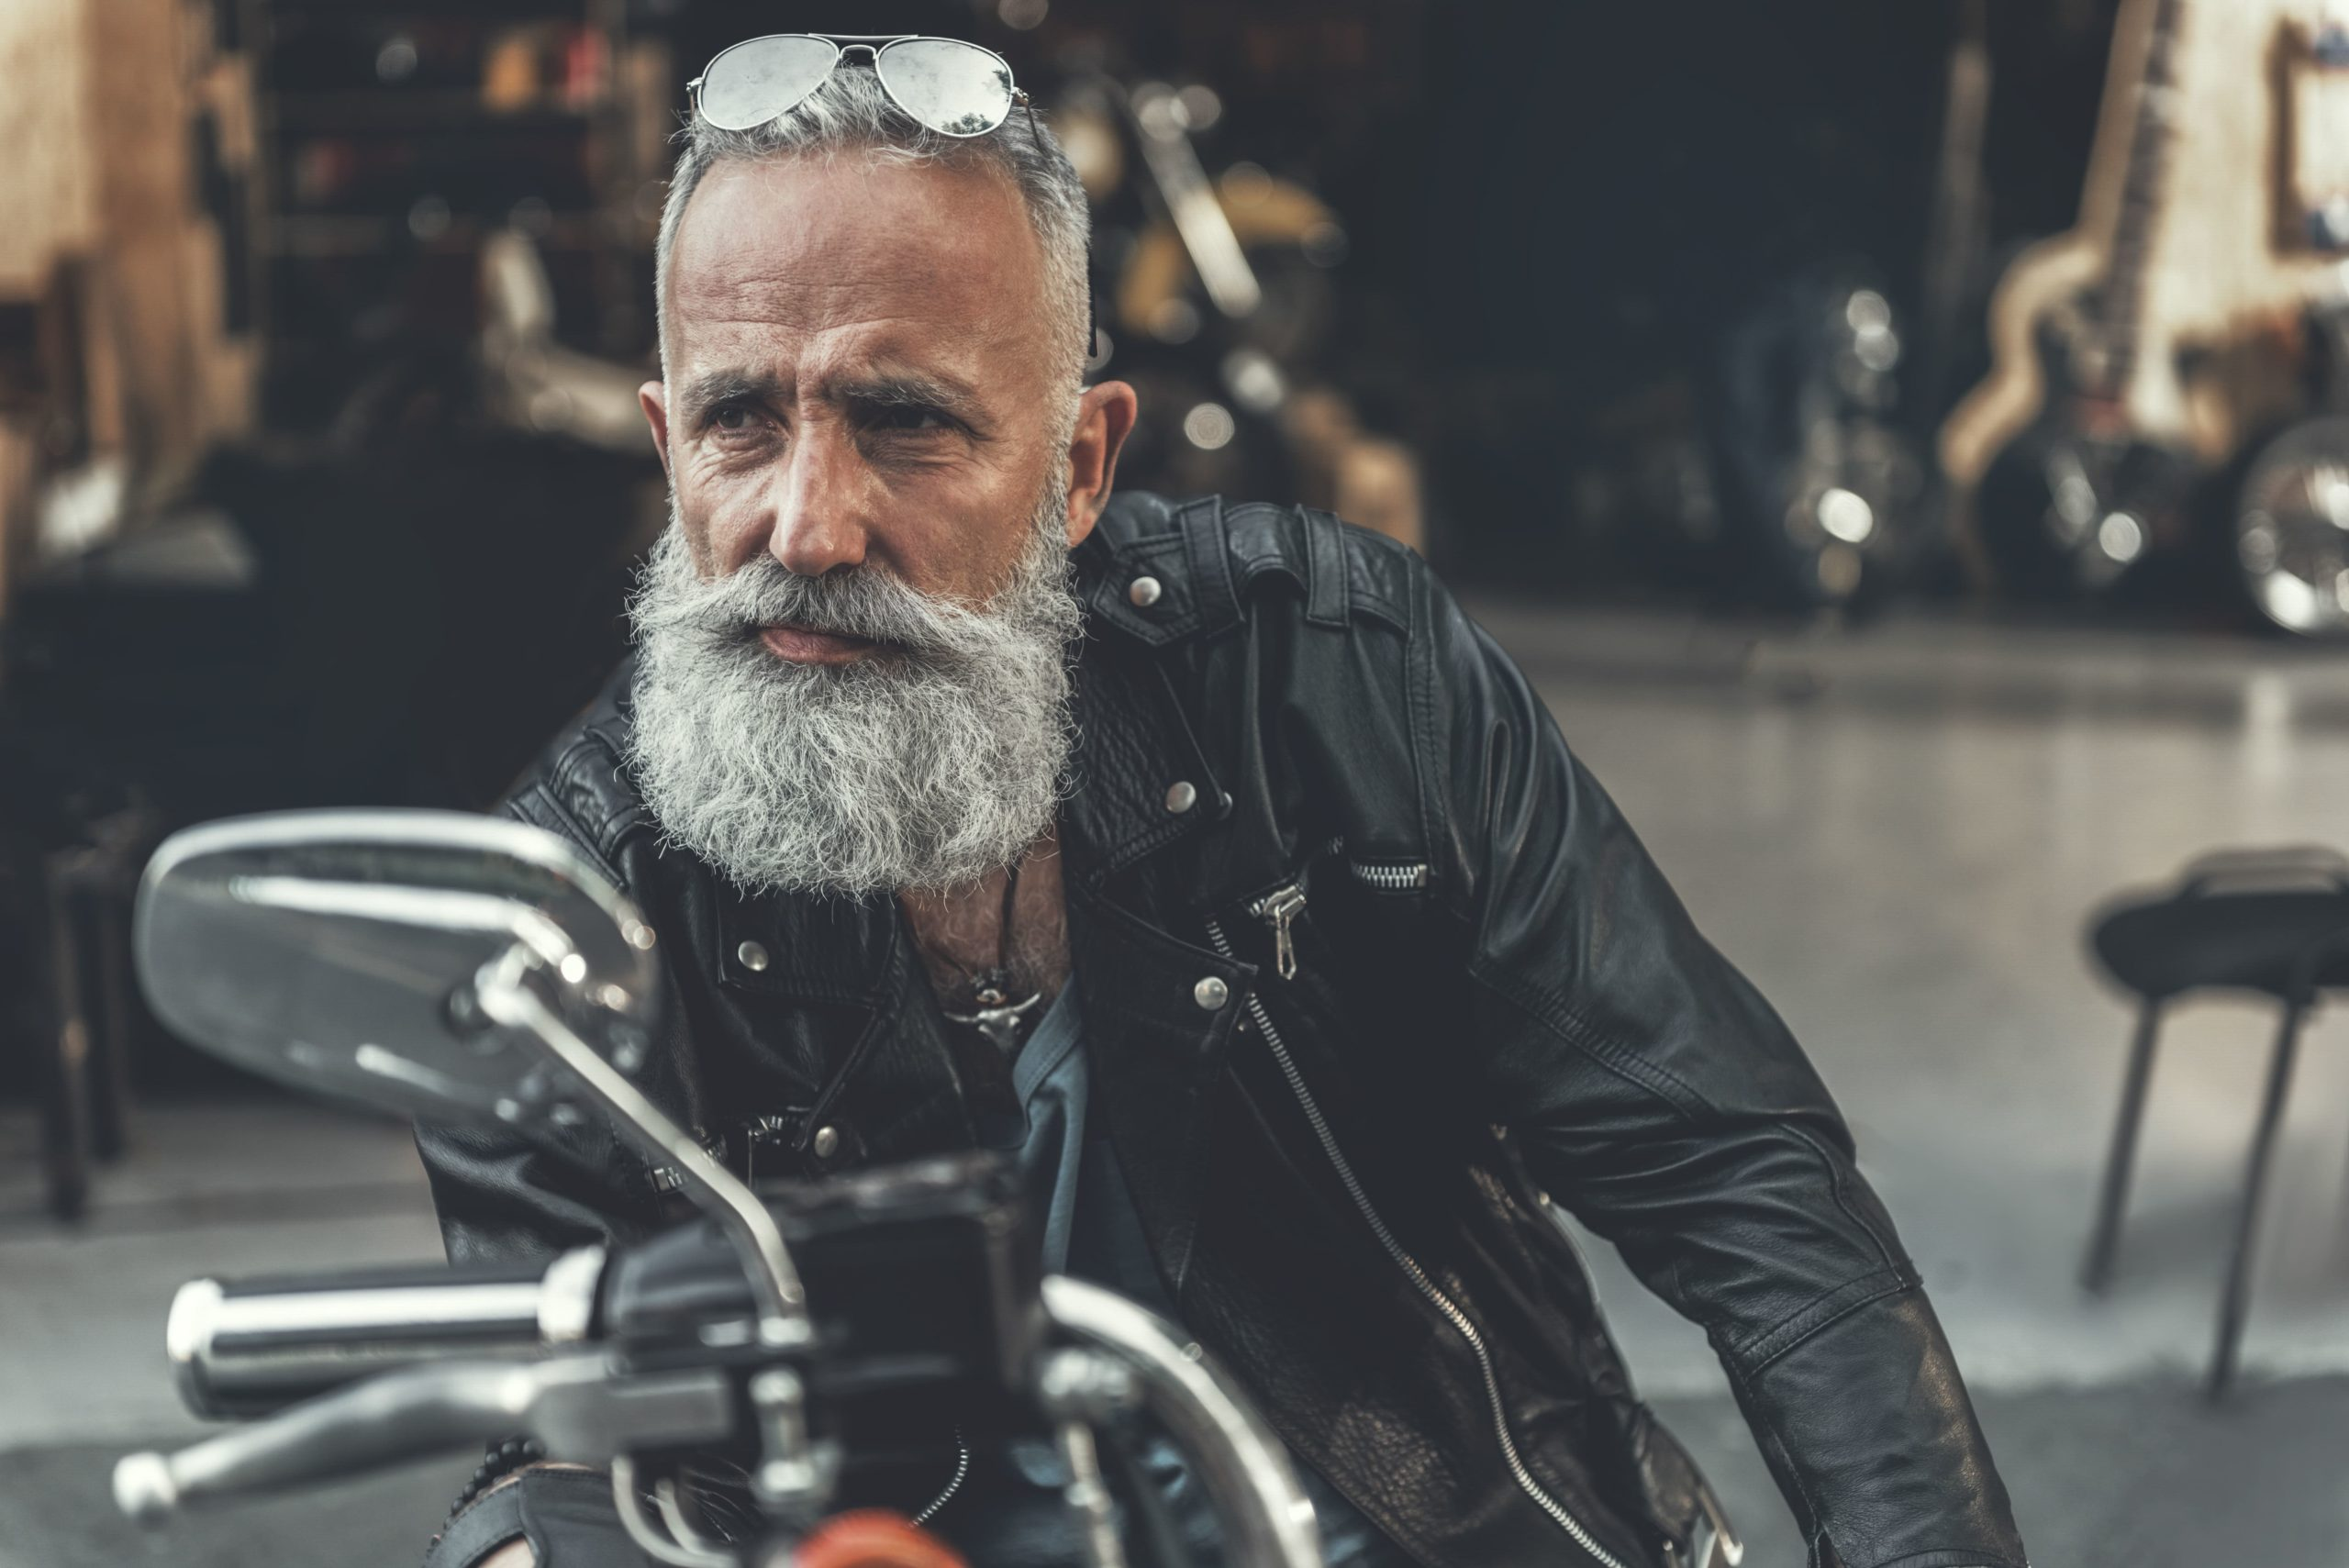 A man with a graying beard sits on his motorcycle with raised sunglasses and looks into the distance.